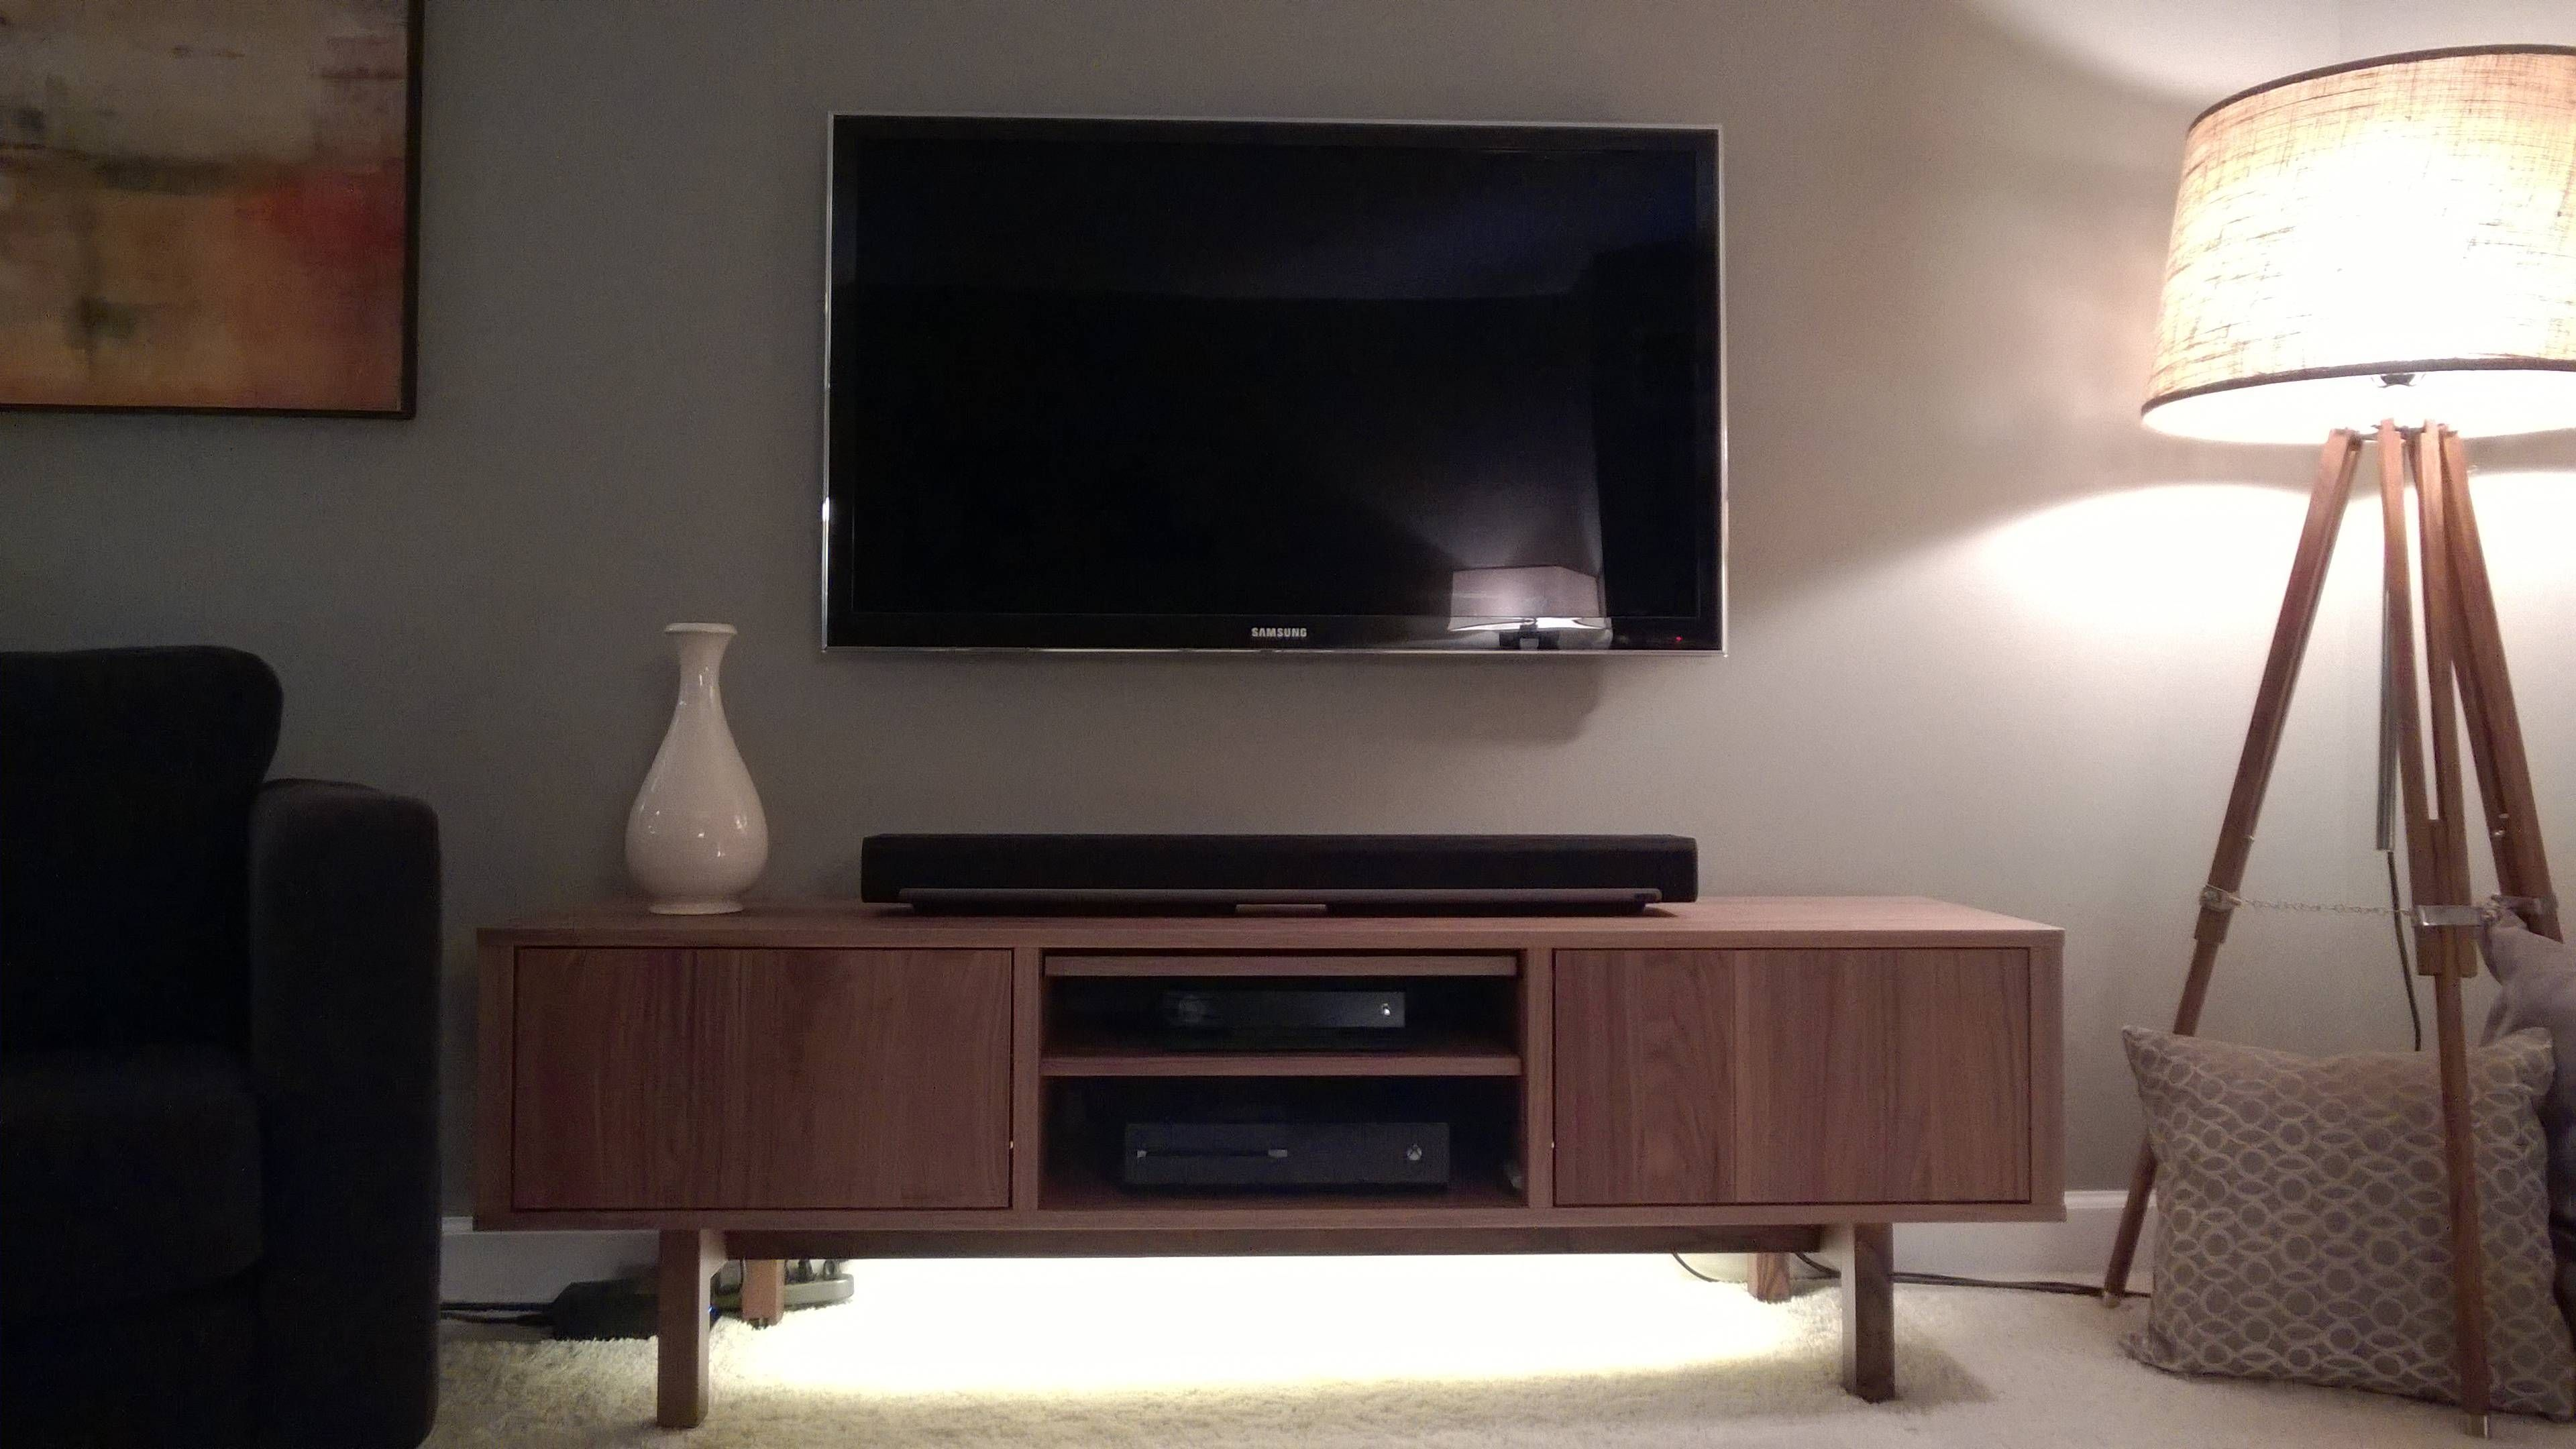 Chicago living room in 2019 living room ikea tv ikea - Dresser as tv stand in living room ...